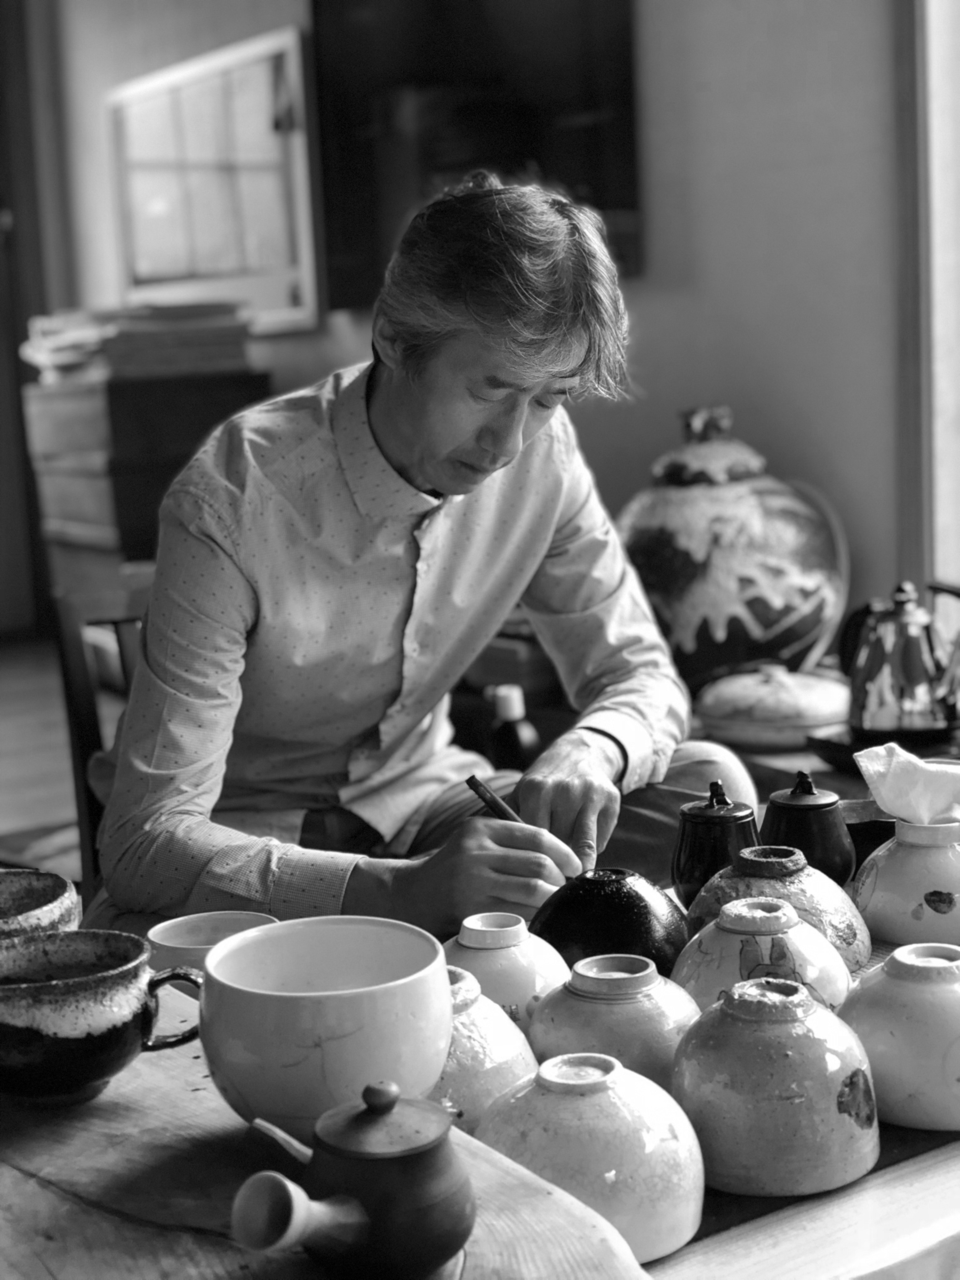 Professor Yoo creating ceramics